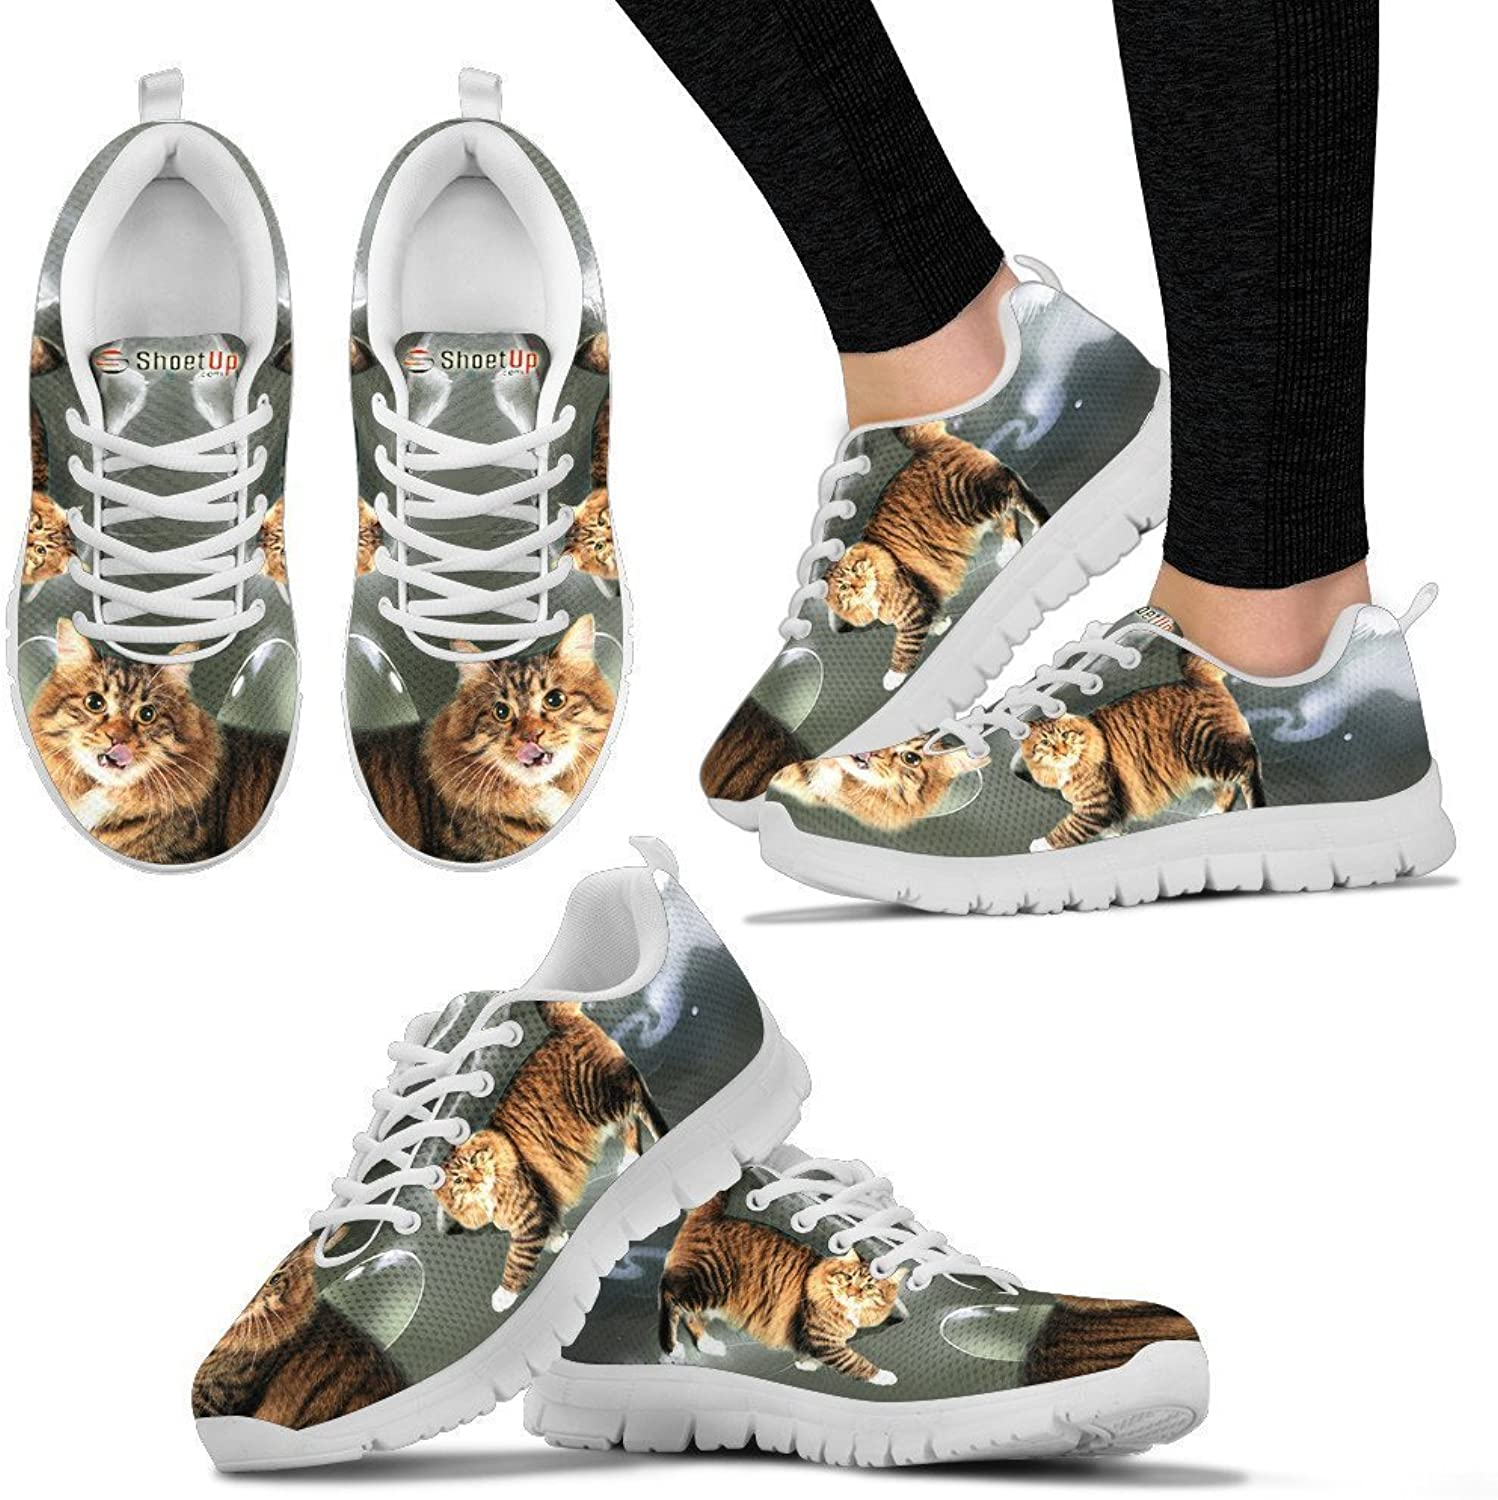 Pet By You American Bobtail Cat (Halloween) 3D Printed Sneakers, Light Weight Sneakers for Women, Breathable Jogging Running Gym shoes, Women Sneakers - US Sizes 5-12.